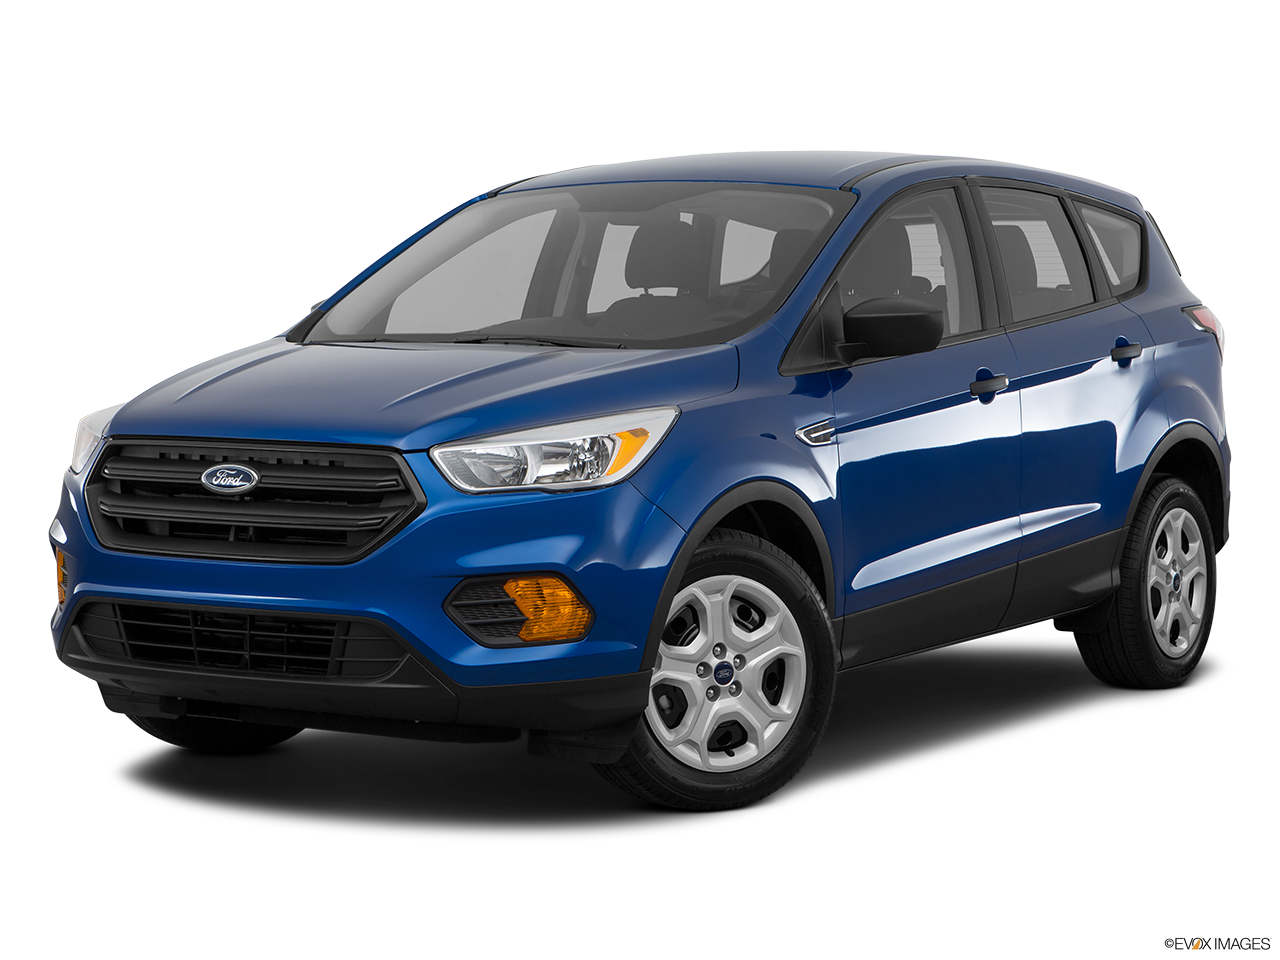 Test Drive A 2017 Ford Escape at Huntington Beach Ford in Huntington Beach